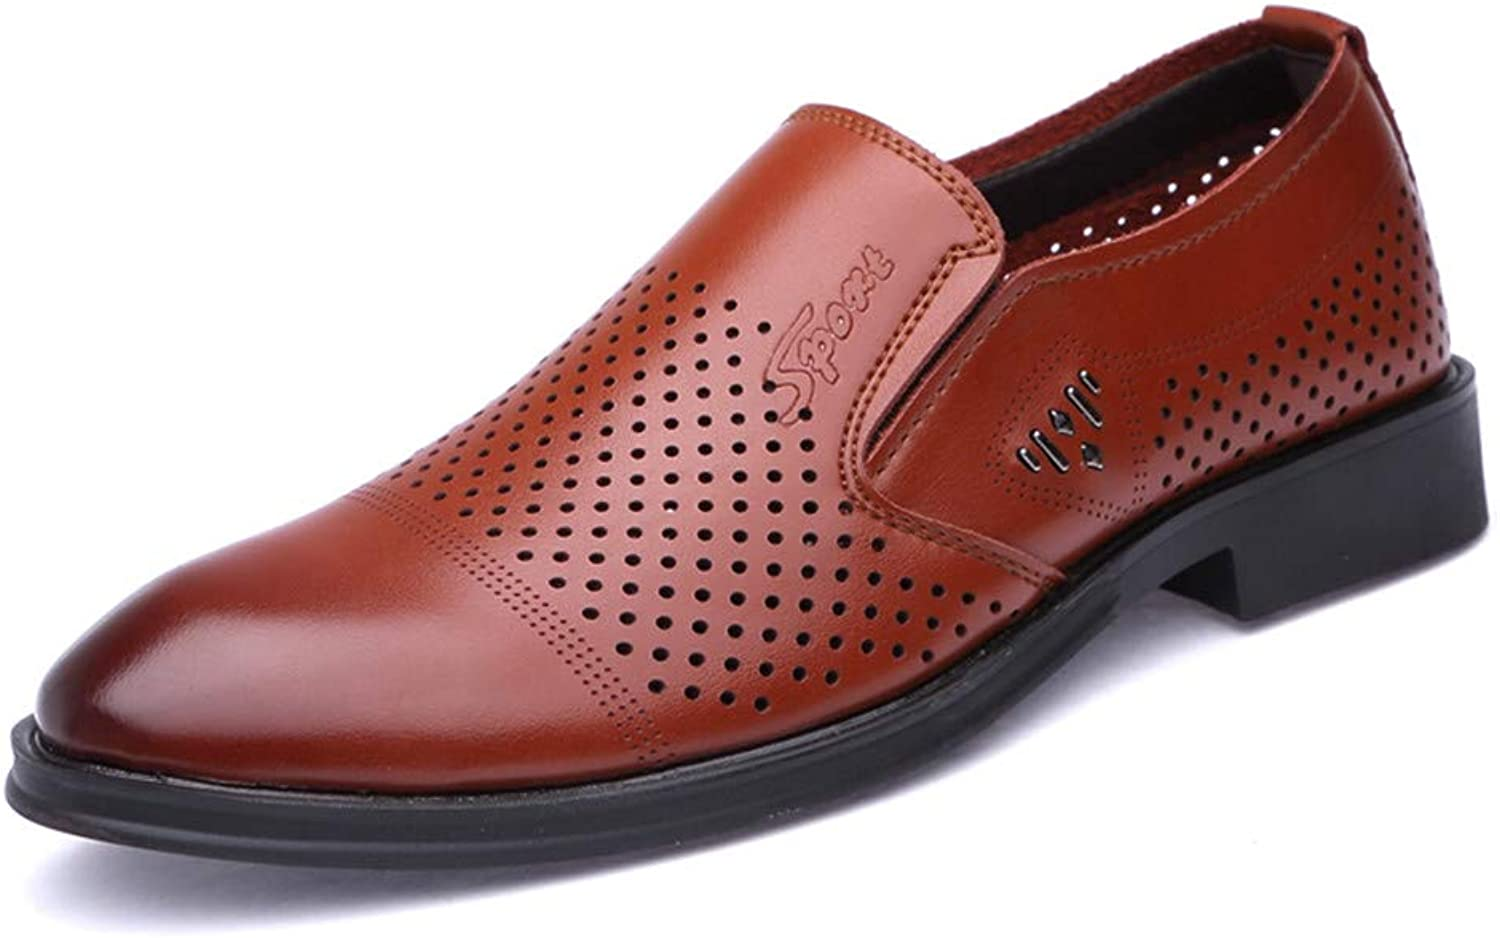 Z.L.F shoes Men's Business Oxford Casual Perforation Breathable Comfortable One Foot Pedal Formal shoes Leather shoes